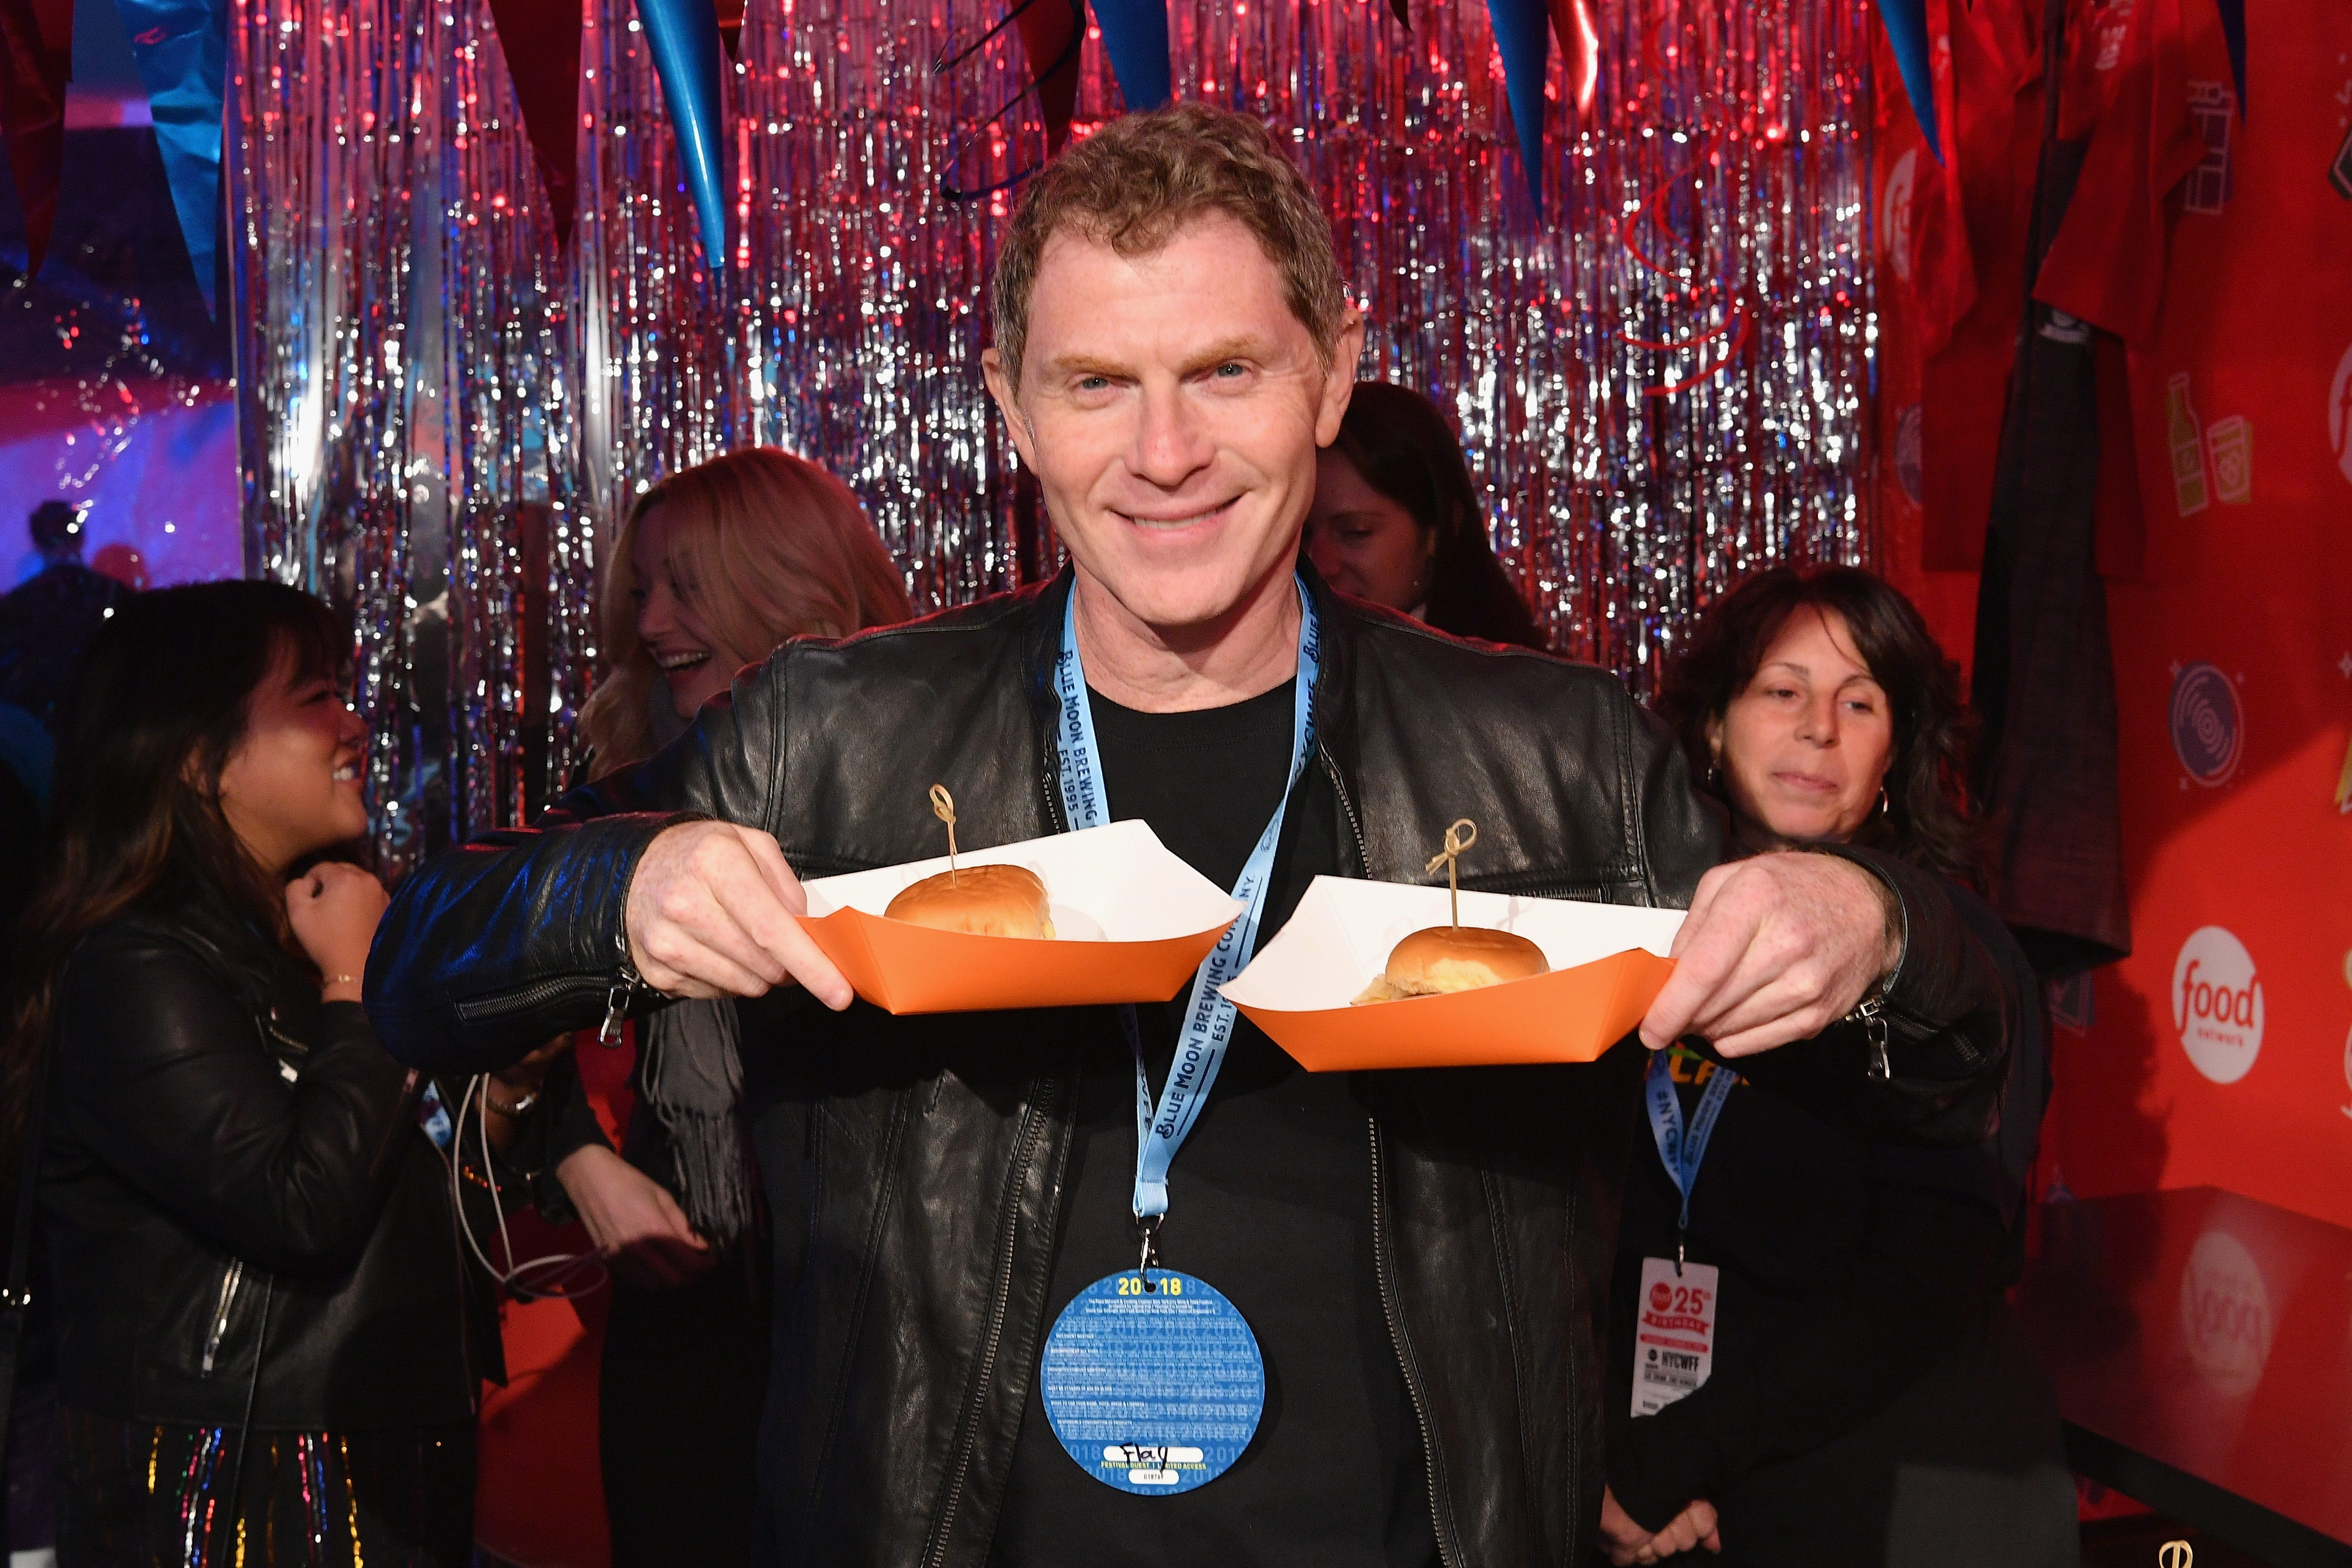 Impossible Burger not on menu for celebrity chef Bobby Flay just yet